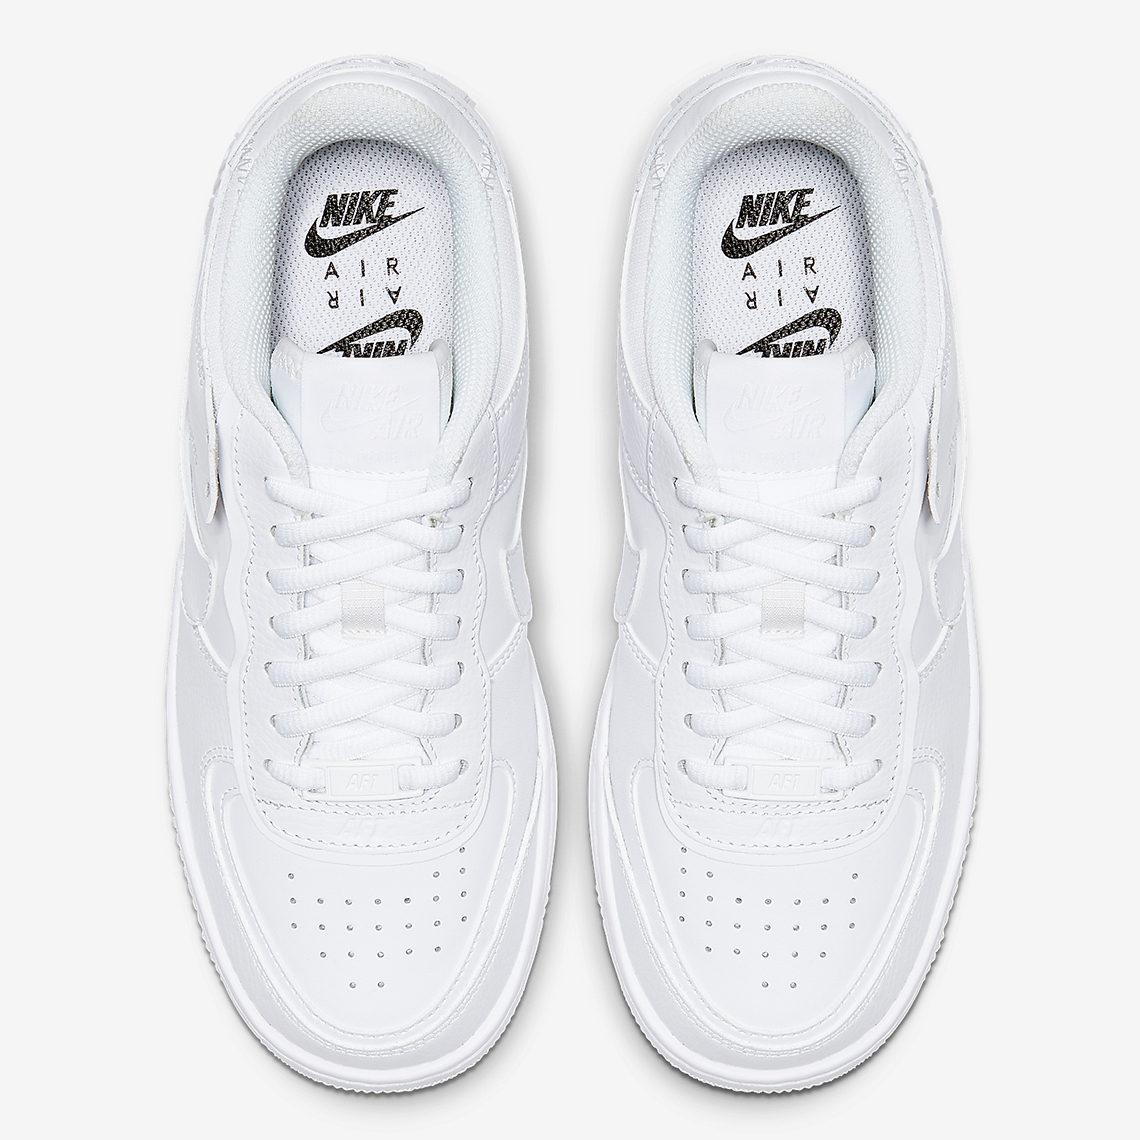 Nike Air Force 1 Low Shadow White Ci0919 100 Release Date Sneakernews Com Nike women's air force 1 '07 essential iridescent shoes. nike air force 1 low shadow white